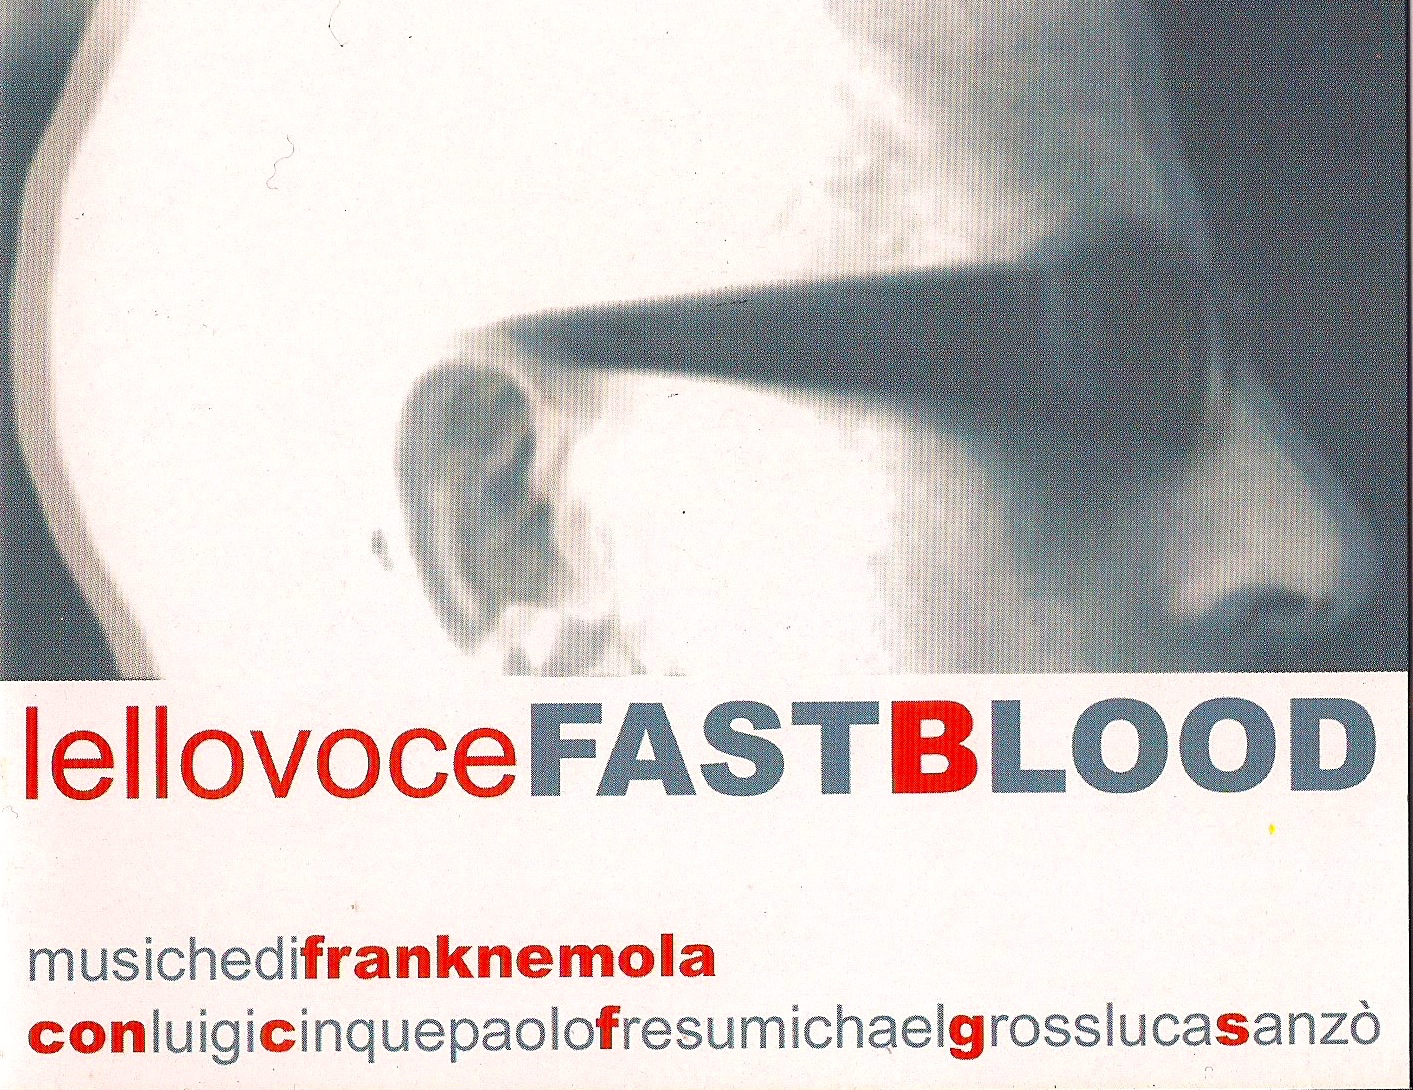 Lello Voce - 'Fast blood'